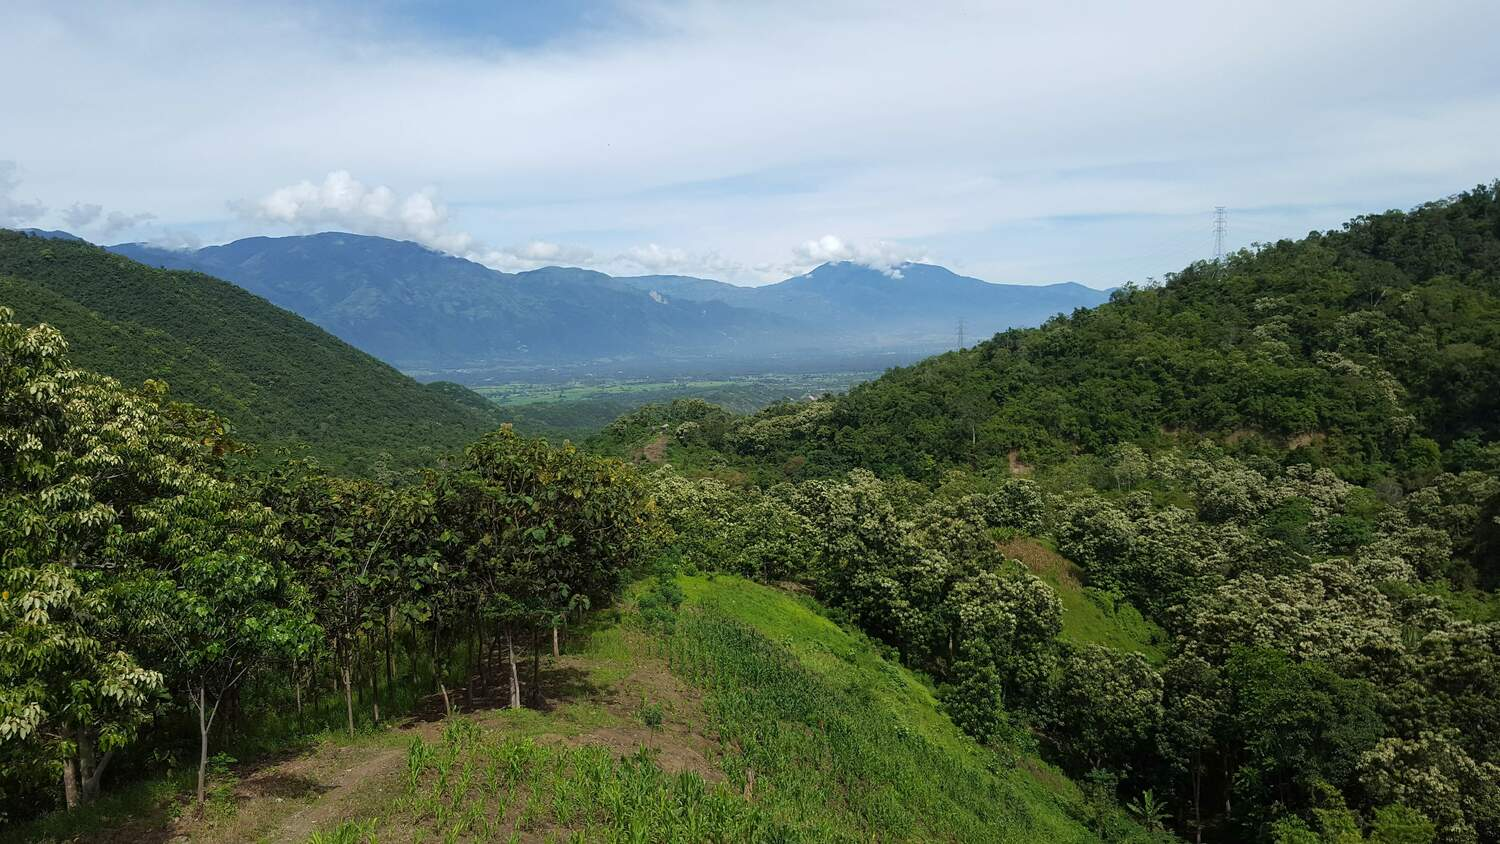 Landscapes in Central Sulawesi, Indonesia, dominated by cocoa plantations